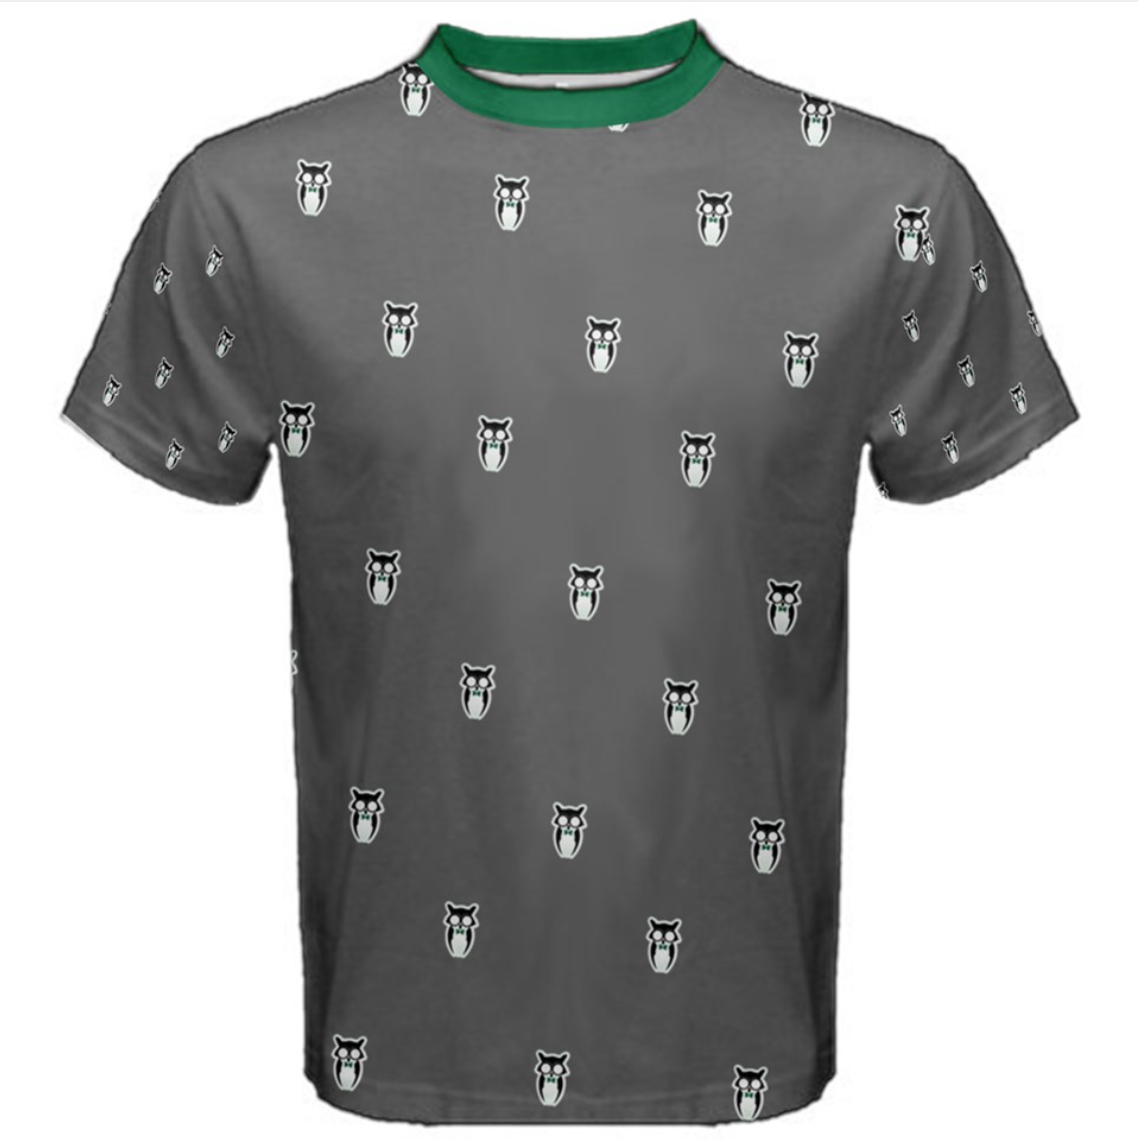 Owl Small Patterned (Unisex) Cotton Tee - Inspired by Slytherin House